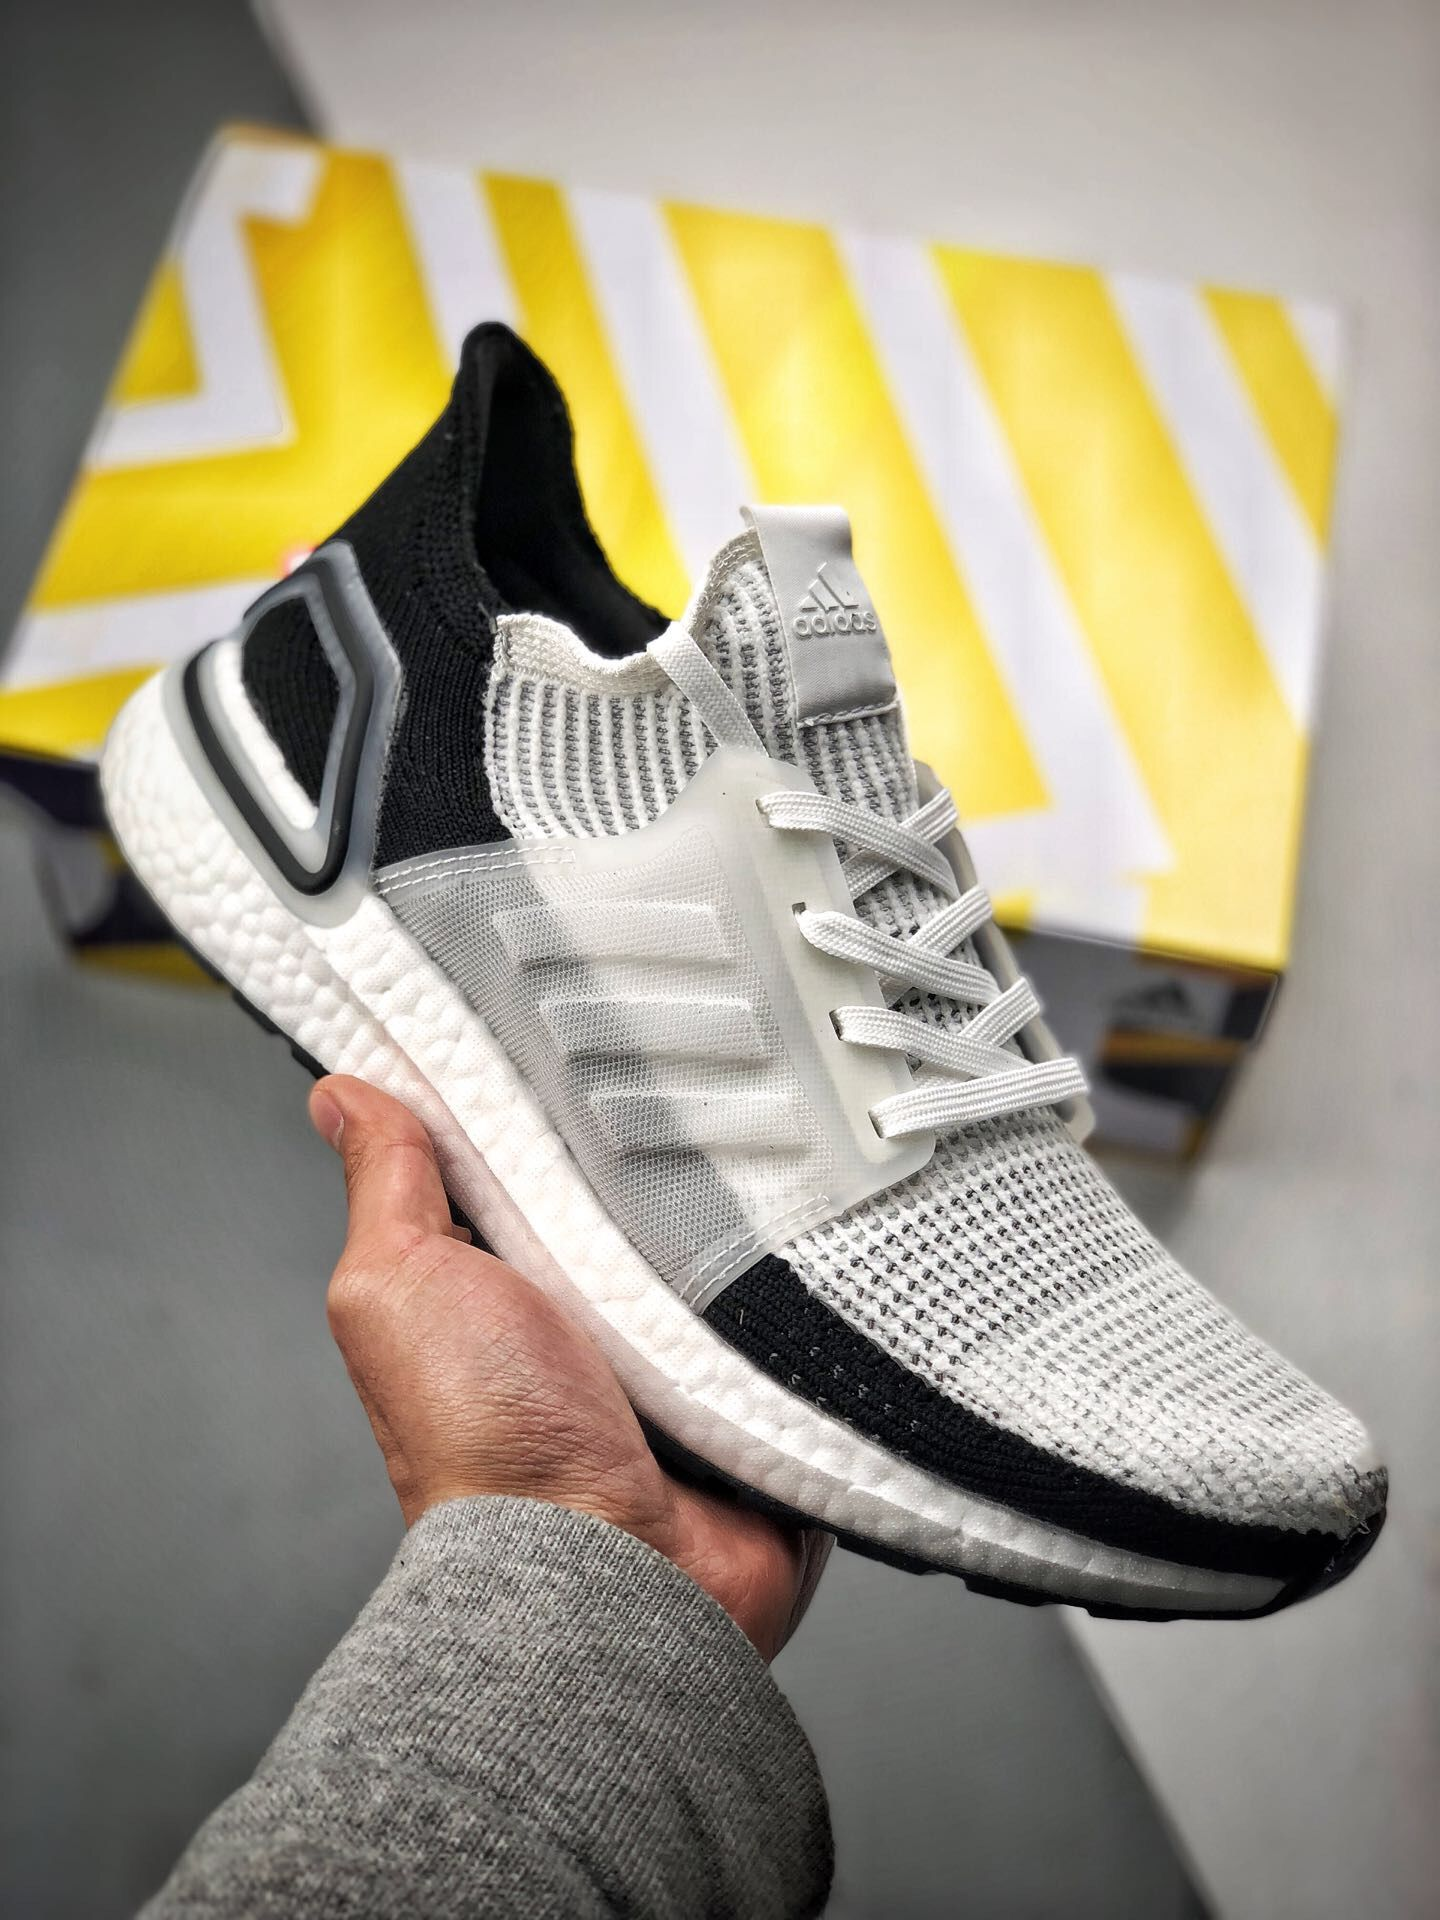 fc612be05e3 Adidas Ultra Boost 5.0 B37707 | SNEAKERS in 2019 | Adidas sneakers ...